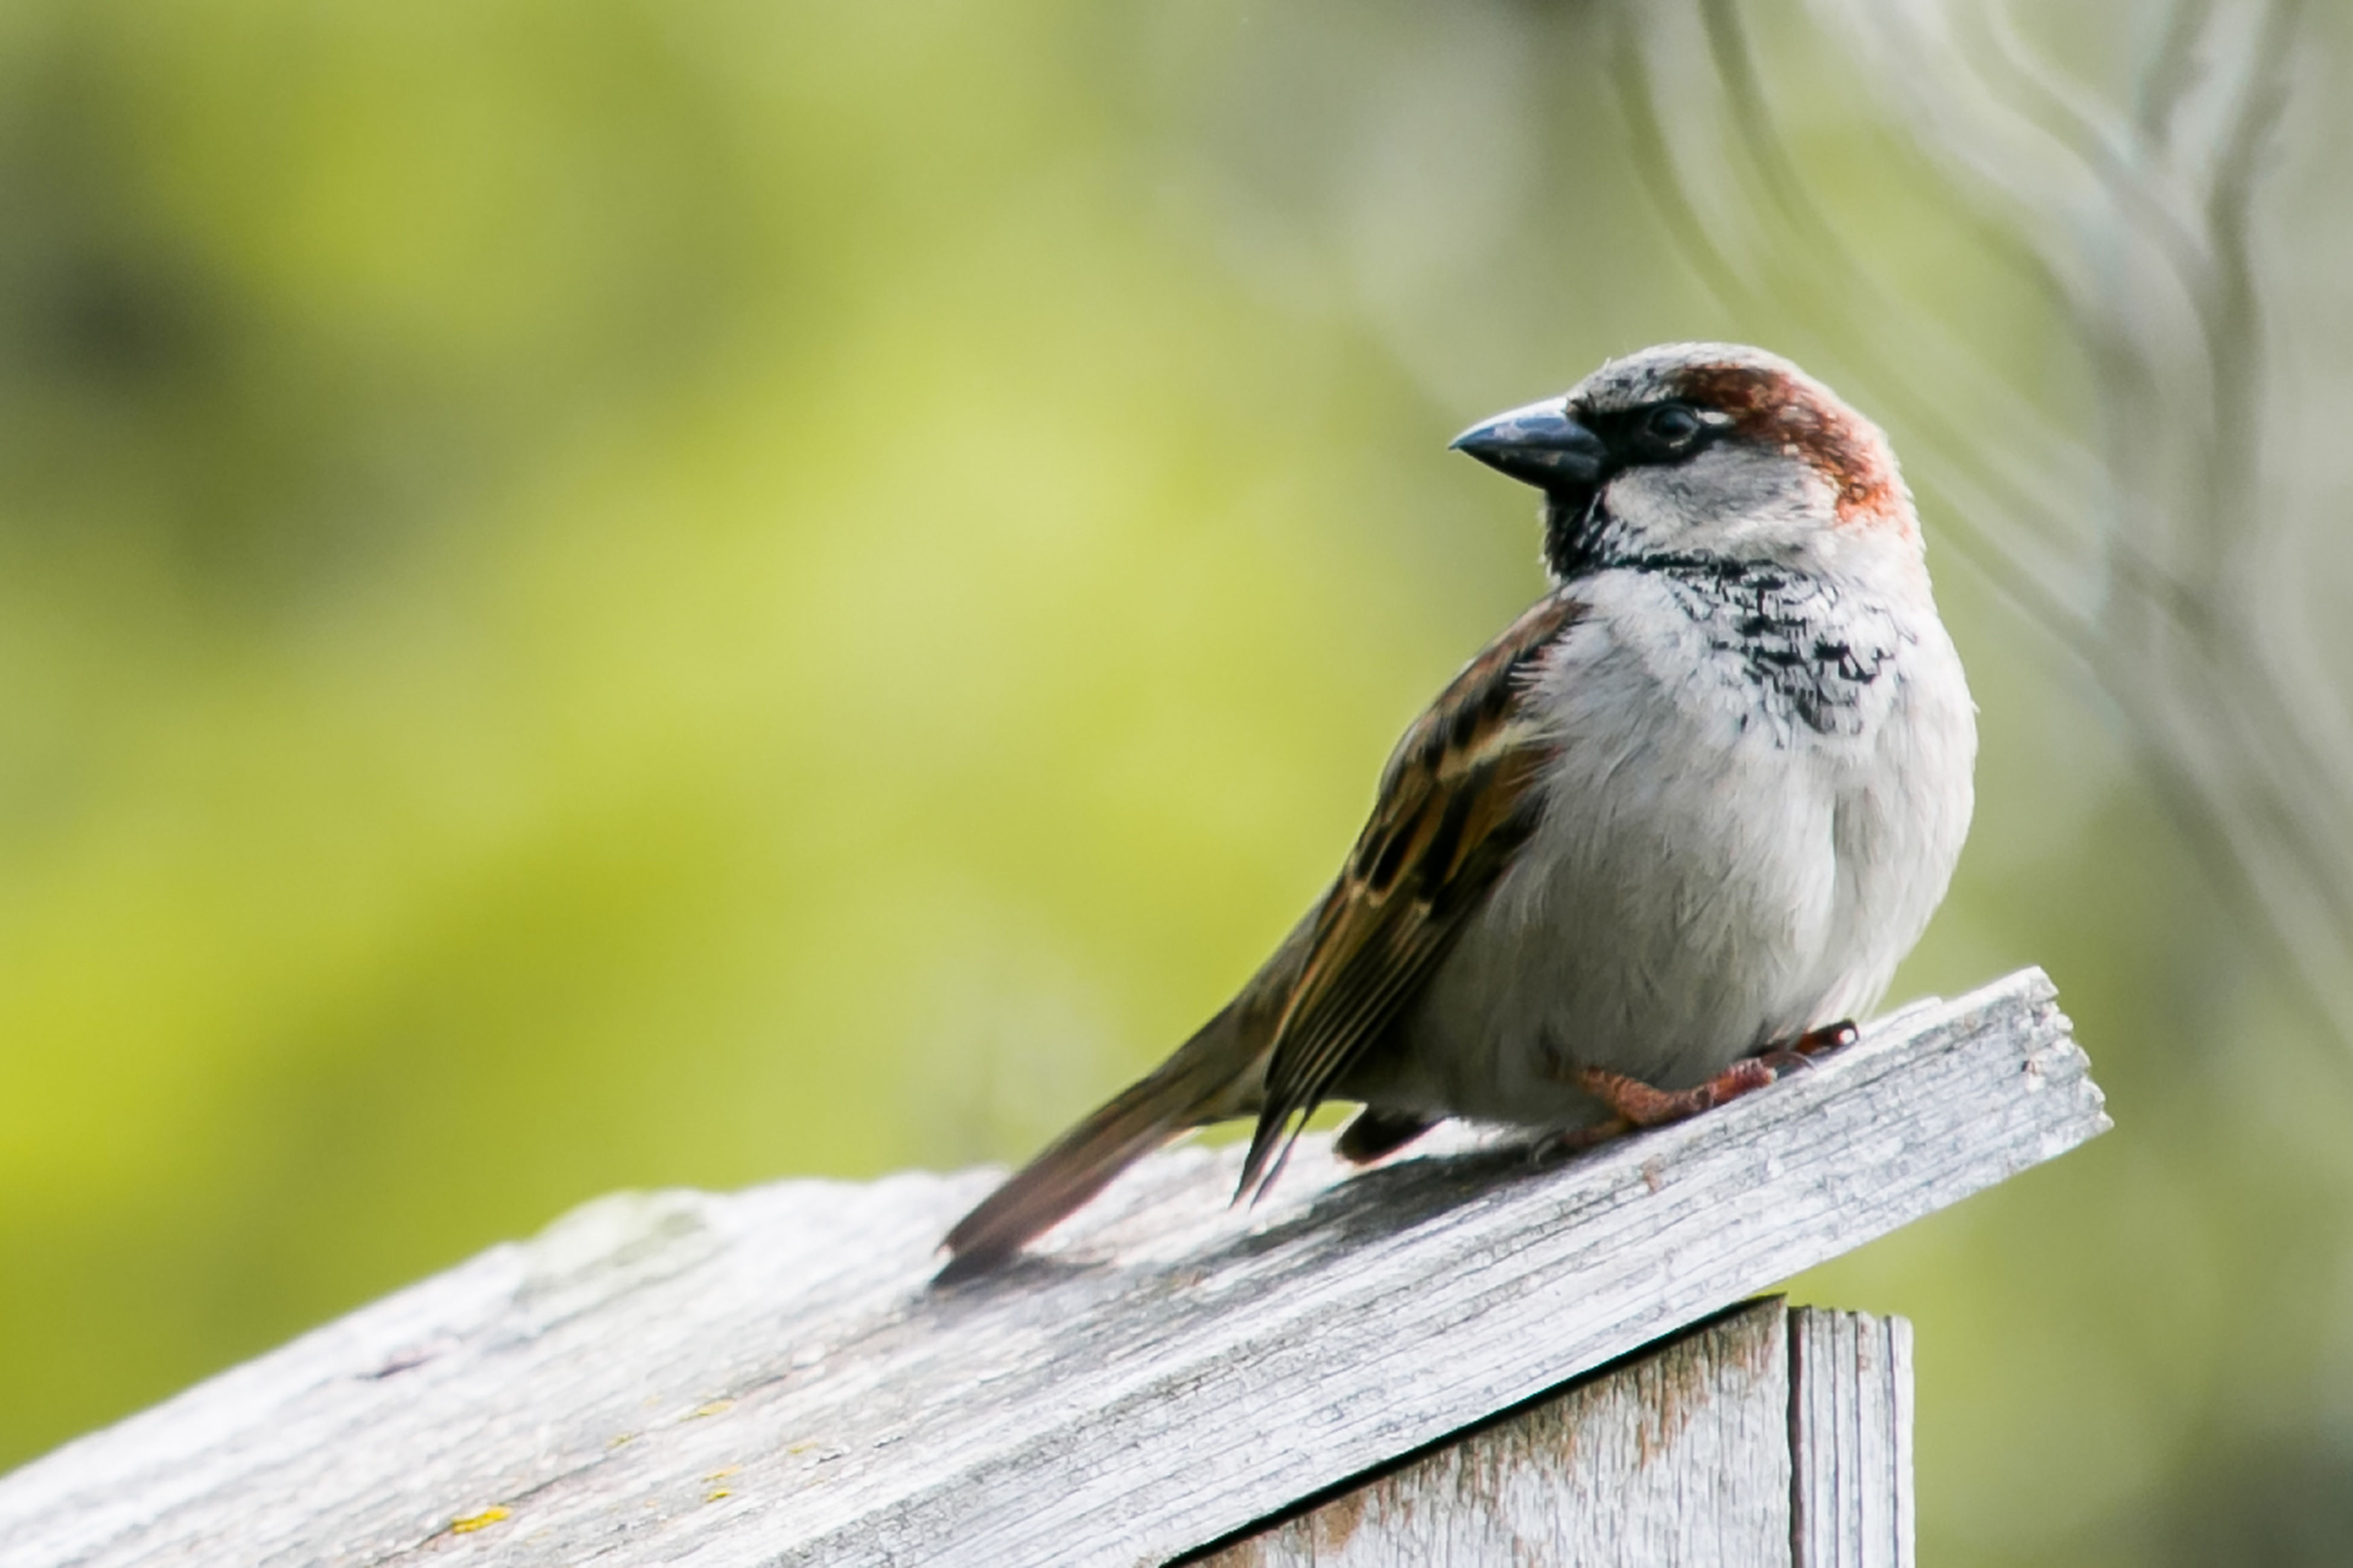 animals in the wild, bird, animal themes, wildlife, perching, one animal, focus on foreground, close-up, wooden, zoology, wood - material, full length, plank, beak, nature, selective focus, day, tranquility, beauty in nature, avian, no people